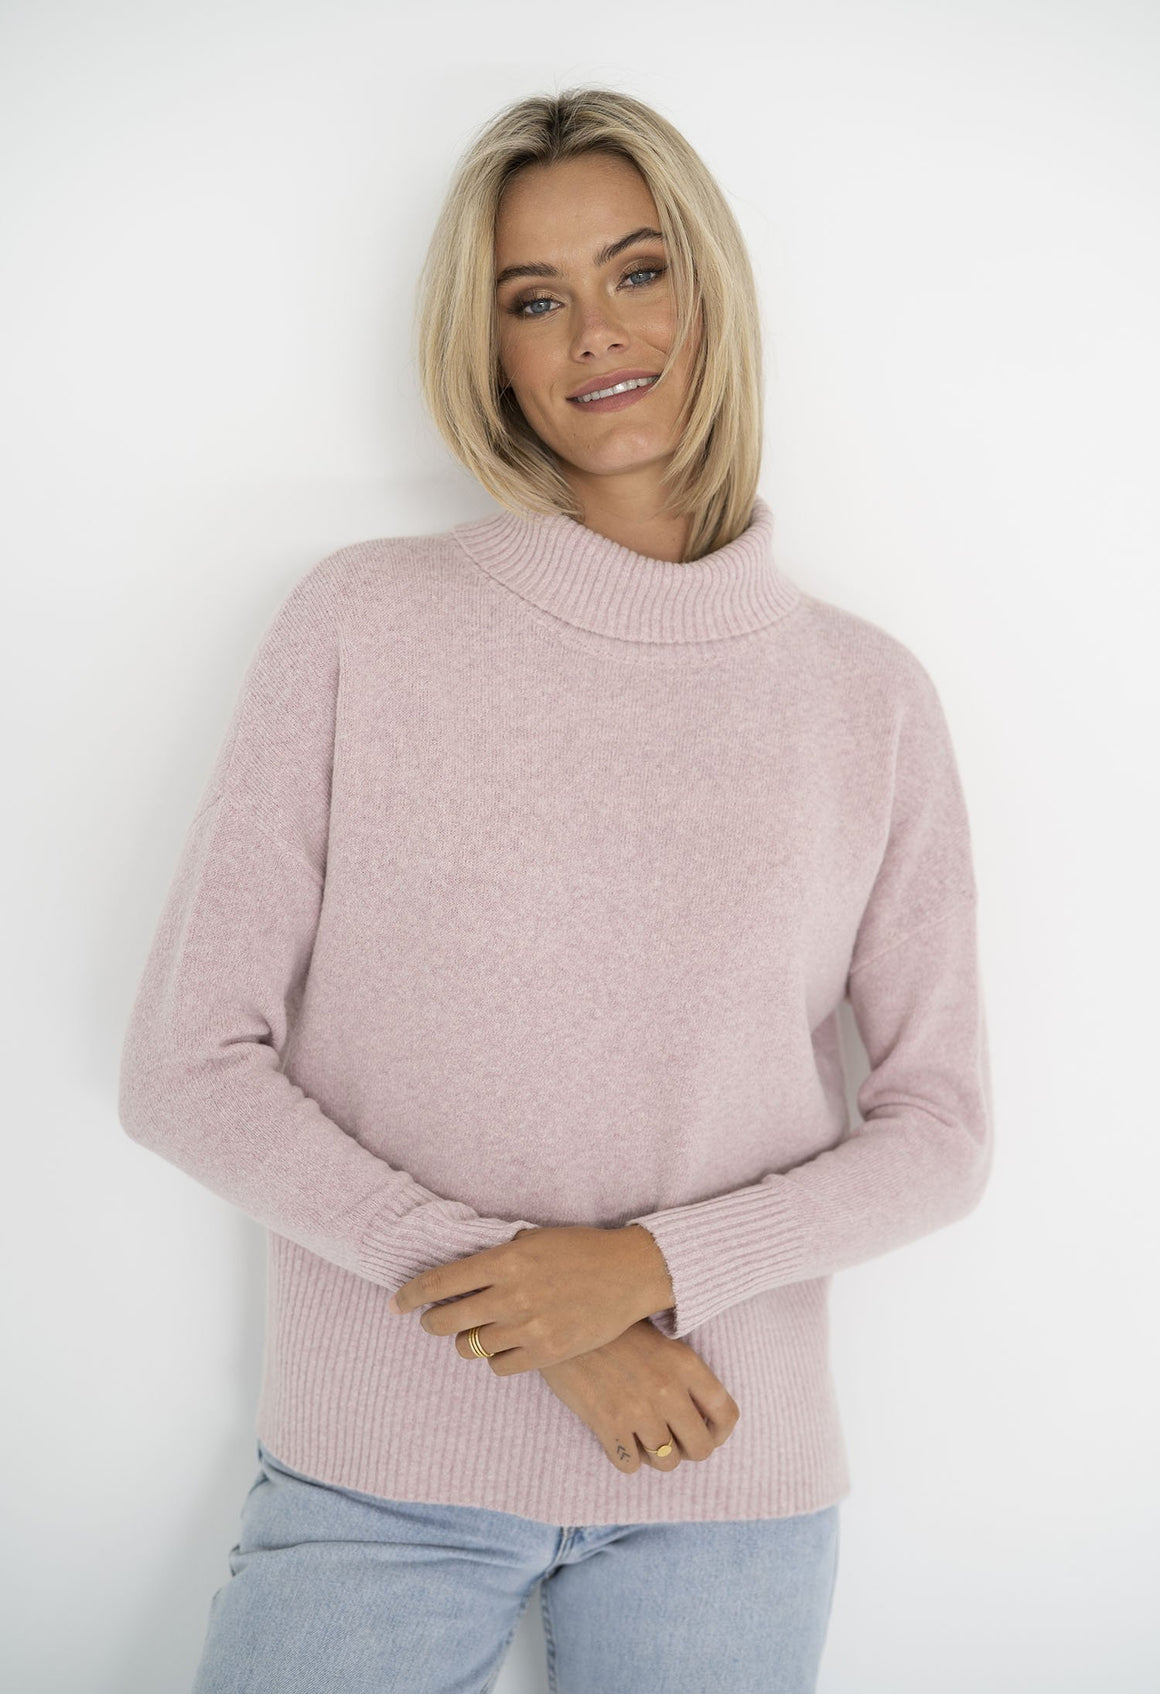 Serenity Roll Neck in Baby Pink